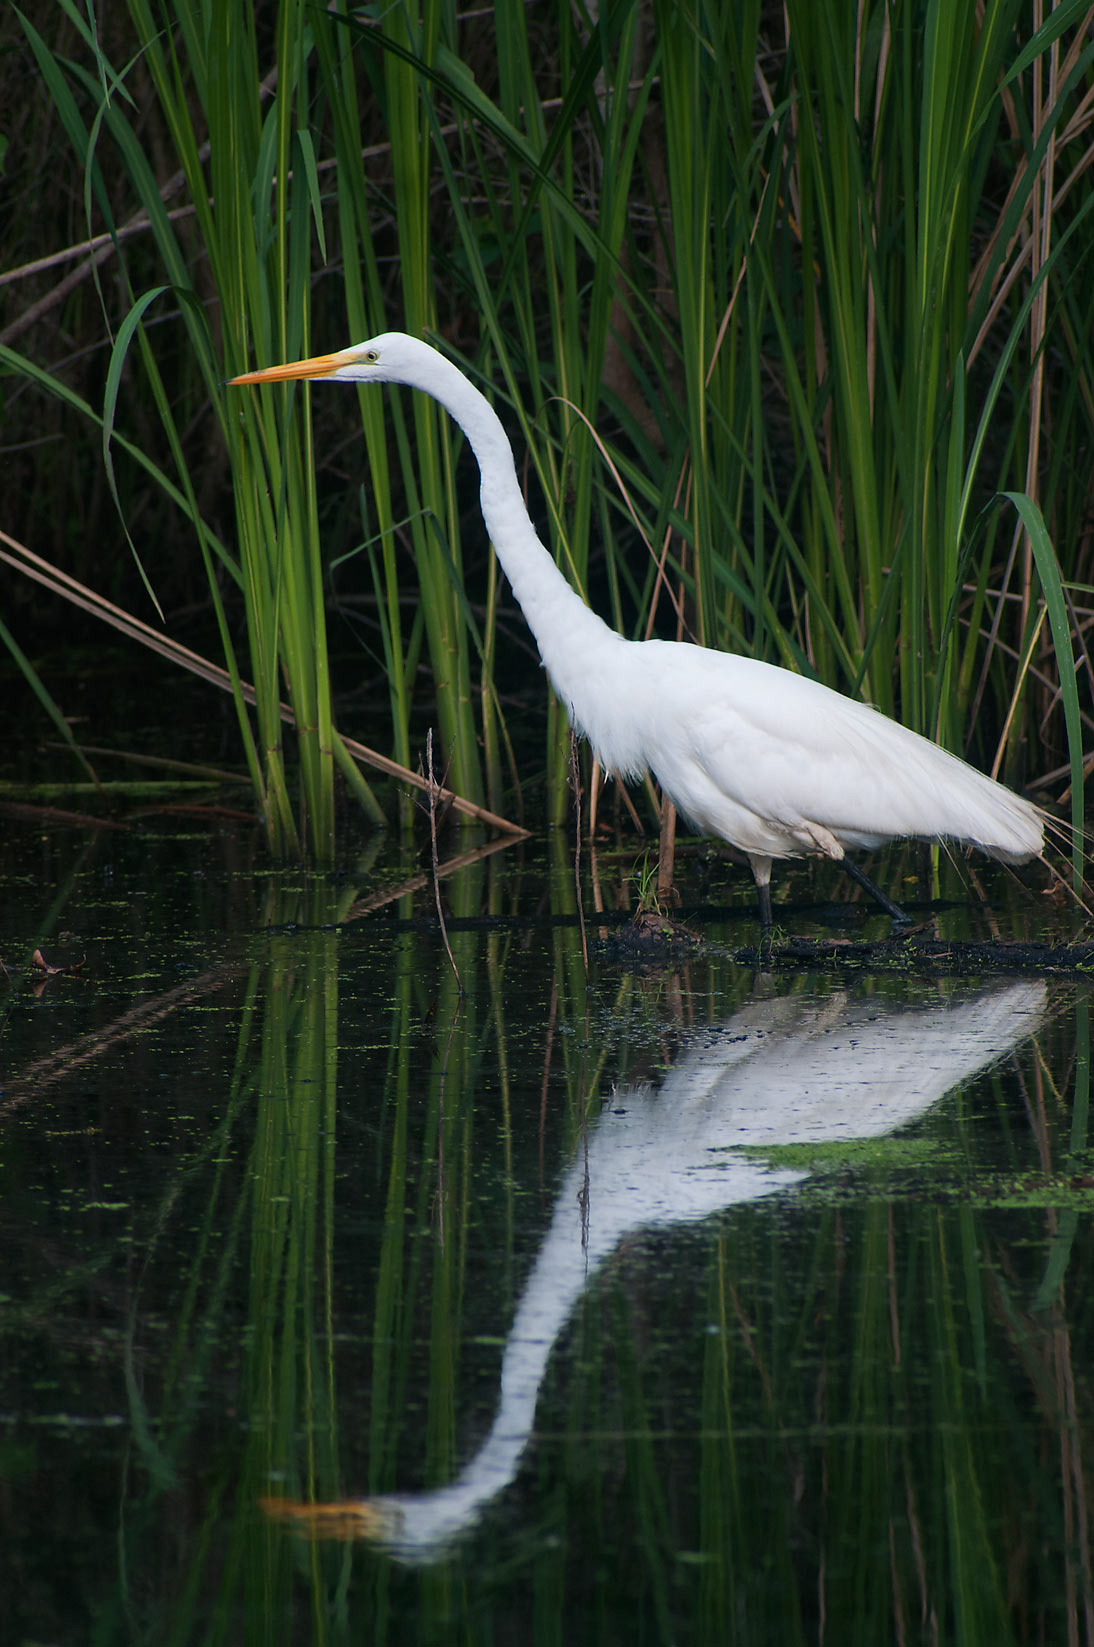 Wading great white egret (Ardea alba) bird in...Bend State Park. Needville, Texas